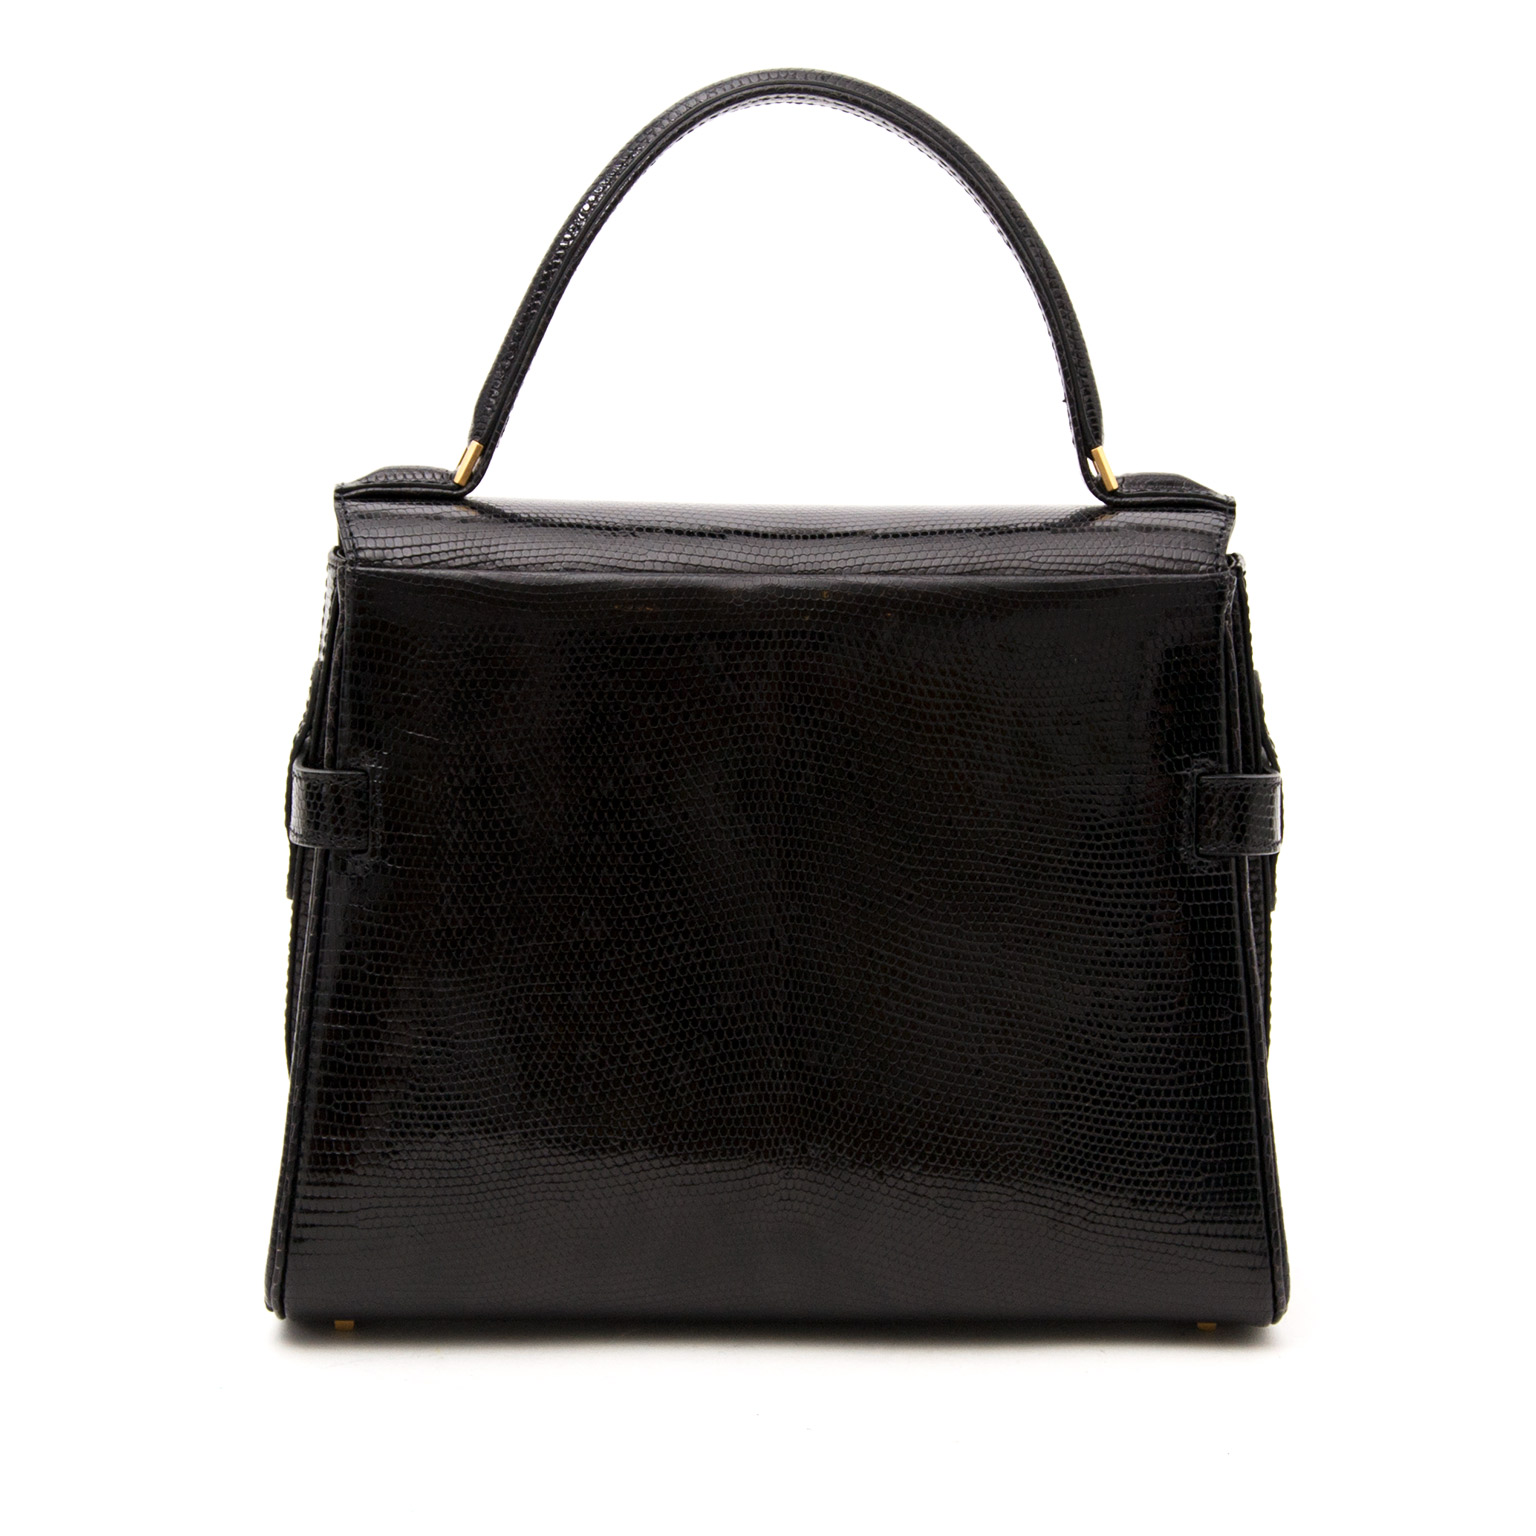 100% authentic seconde main sac a main Delvaux Tempête PM Black Lizard